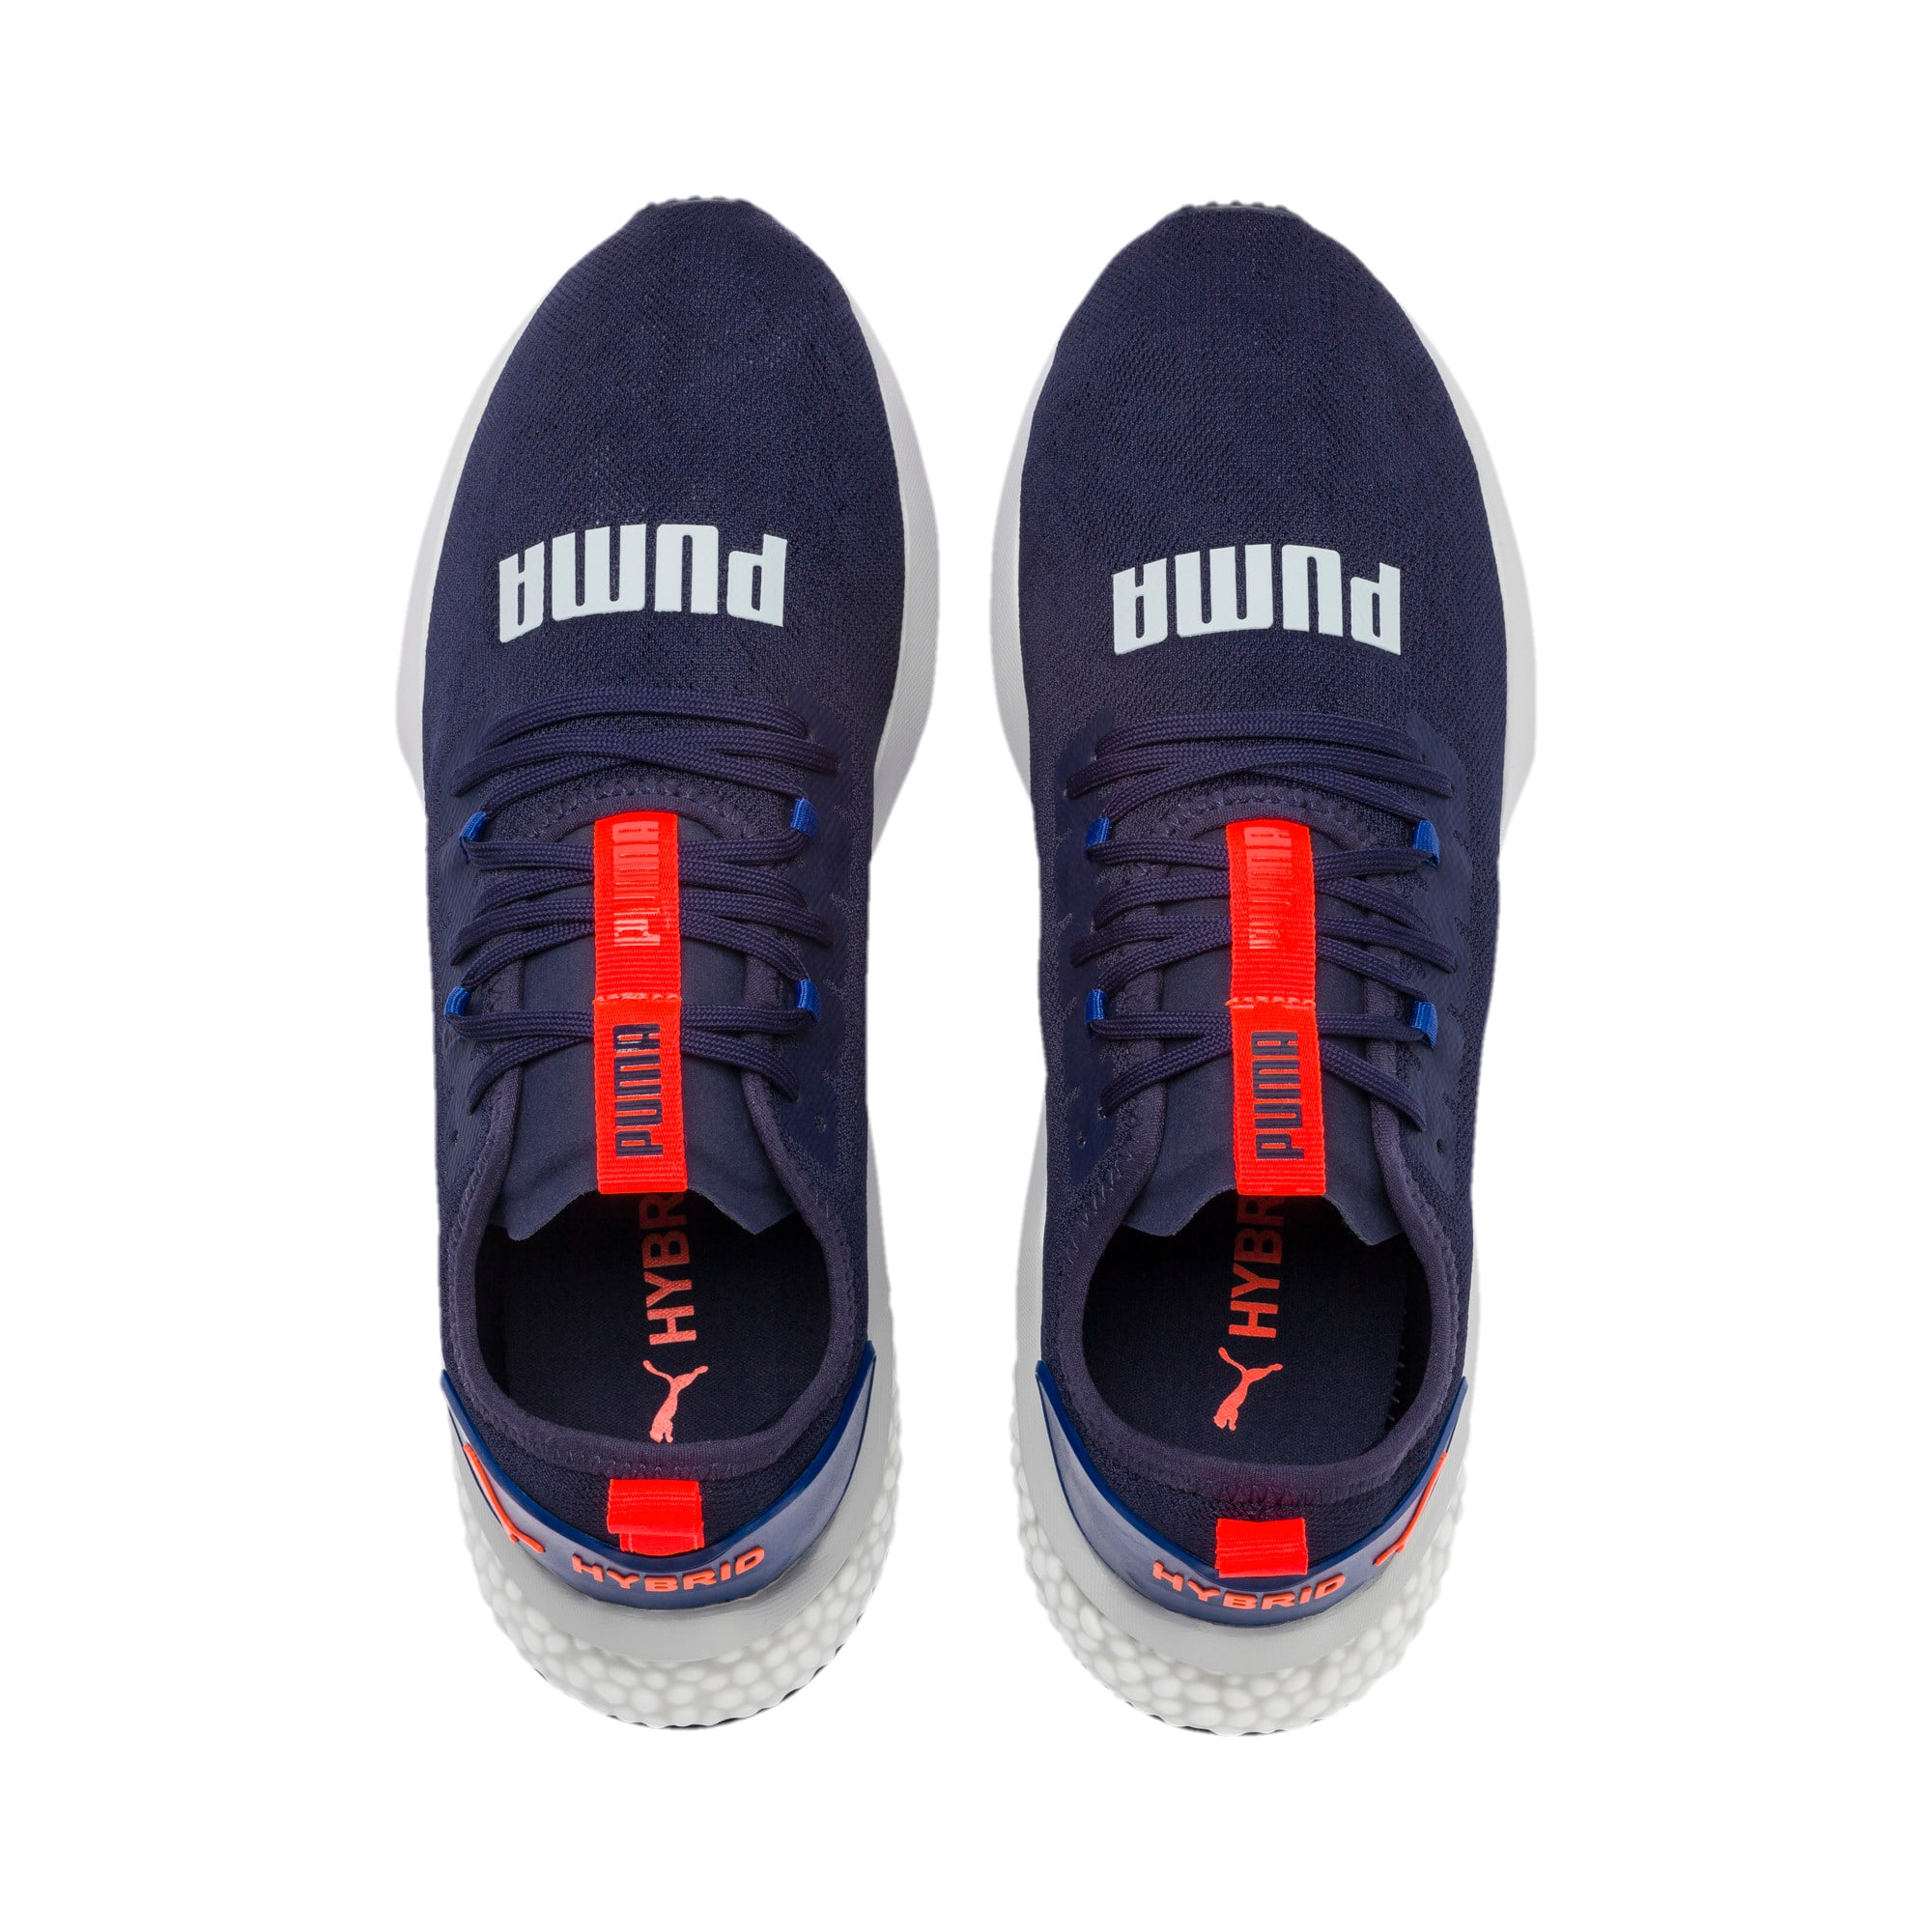 Thumbnail 8 of Hybrid NX Camo Men's Running Sneakers, GalaxyBlue-Peacoat-HighRise, medium-IND